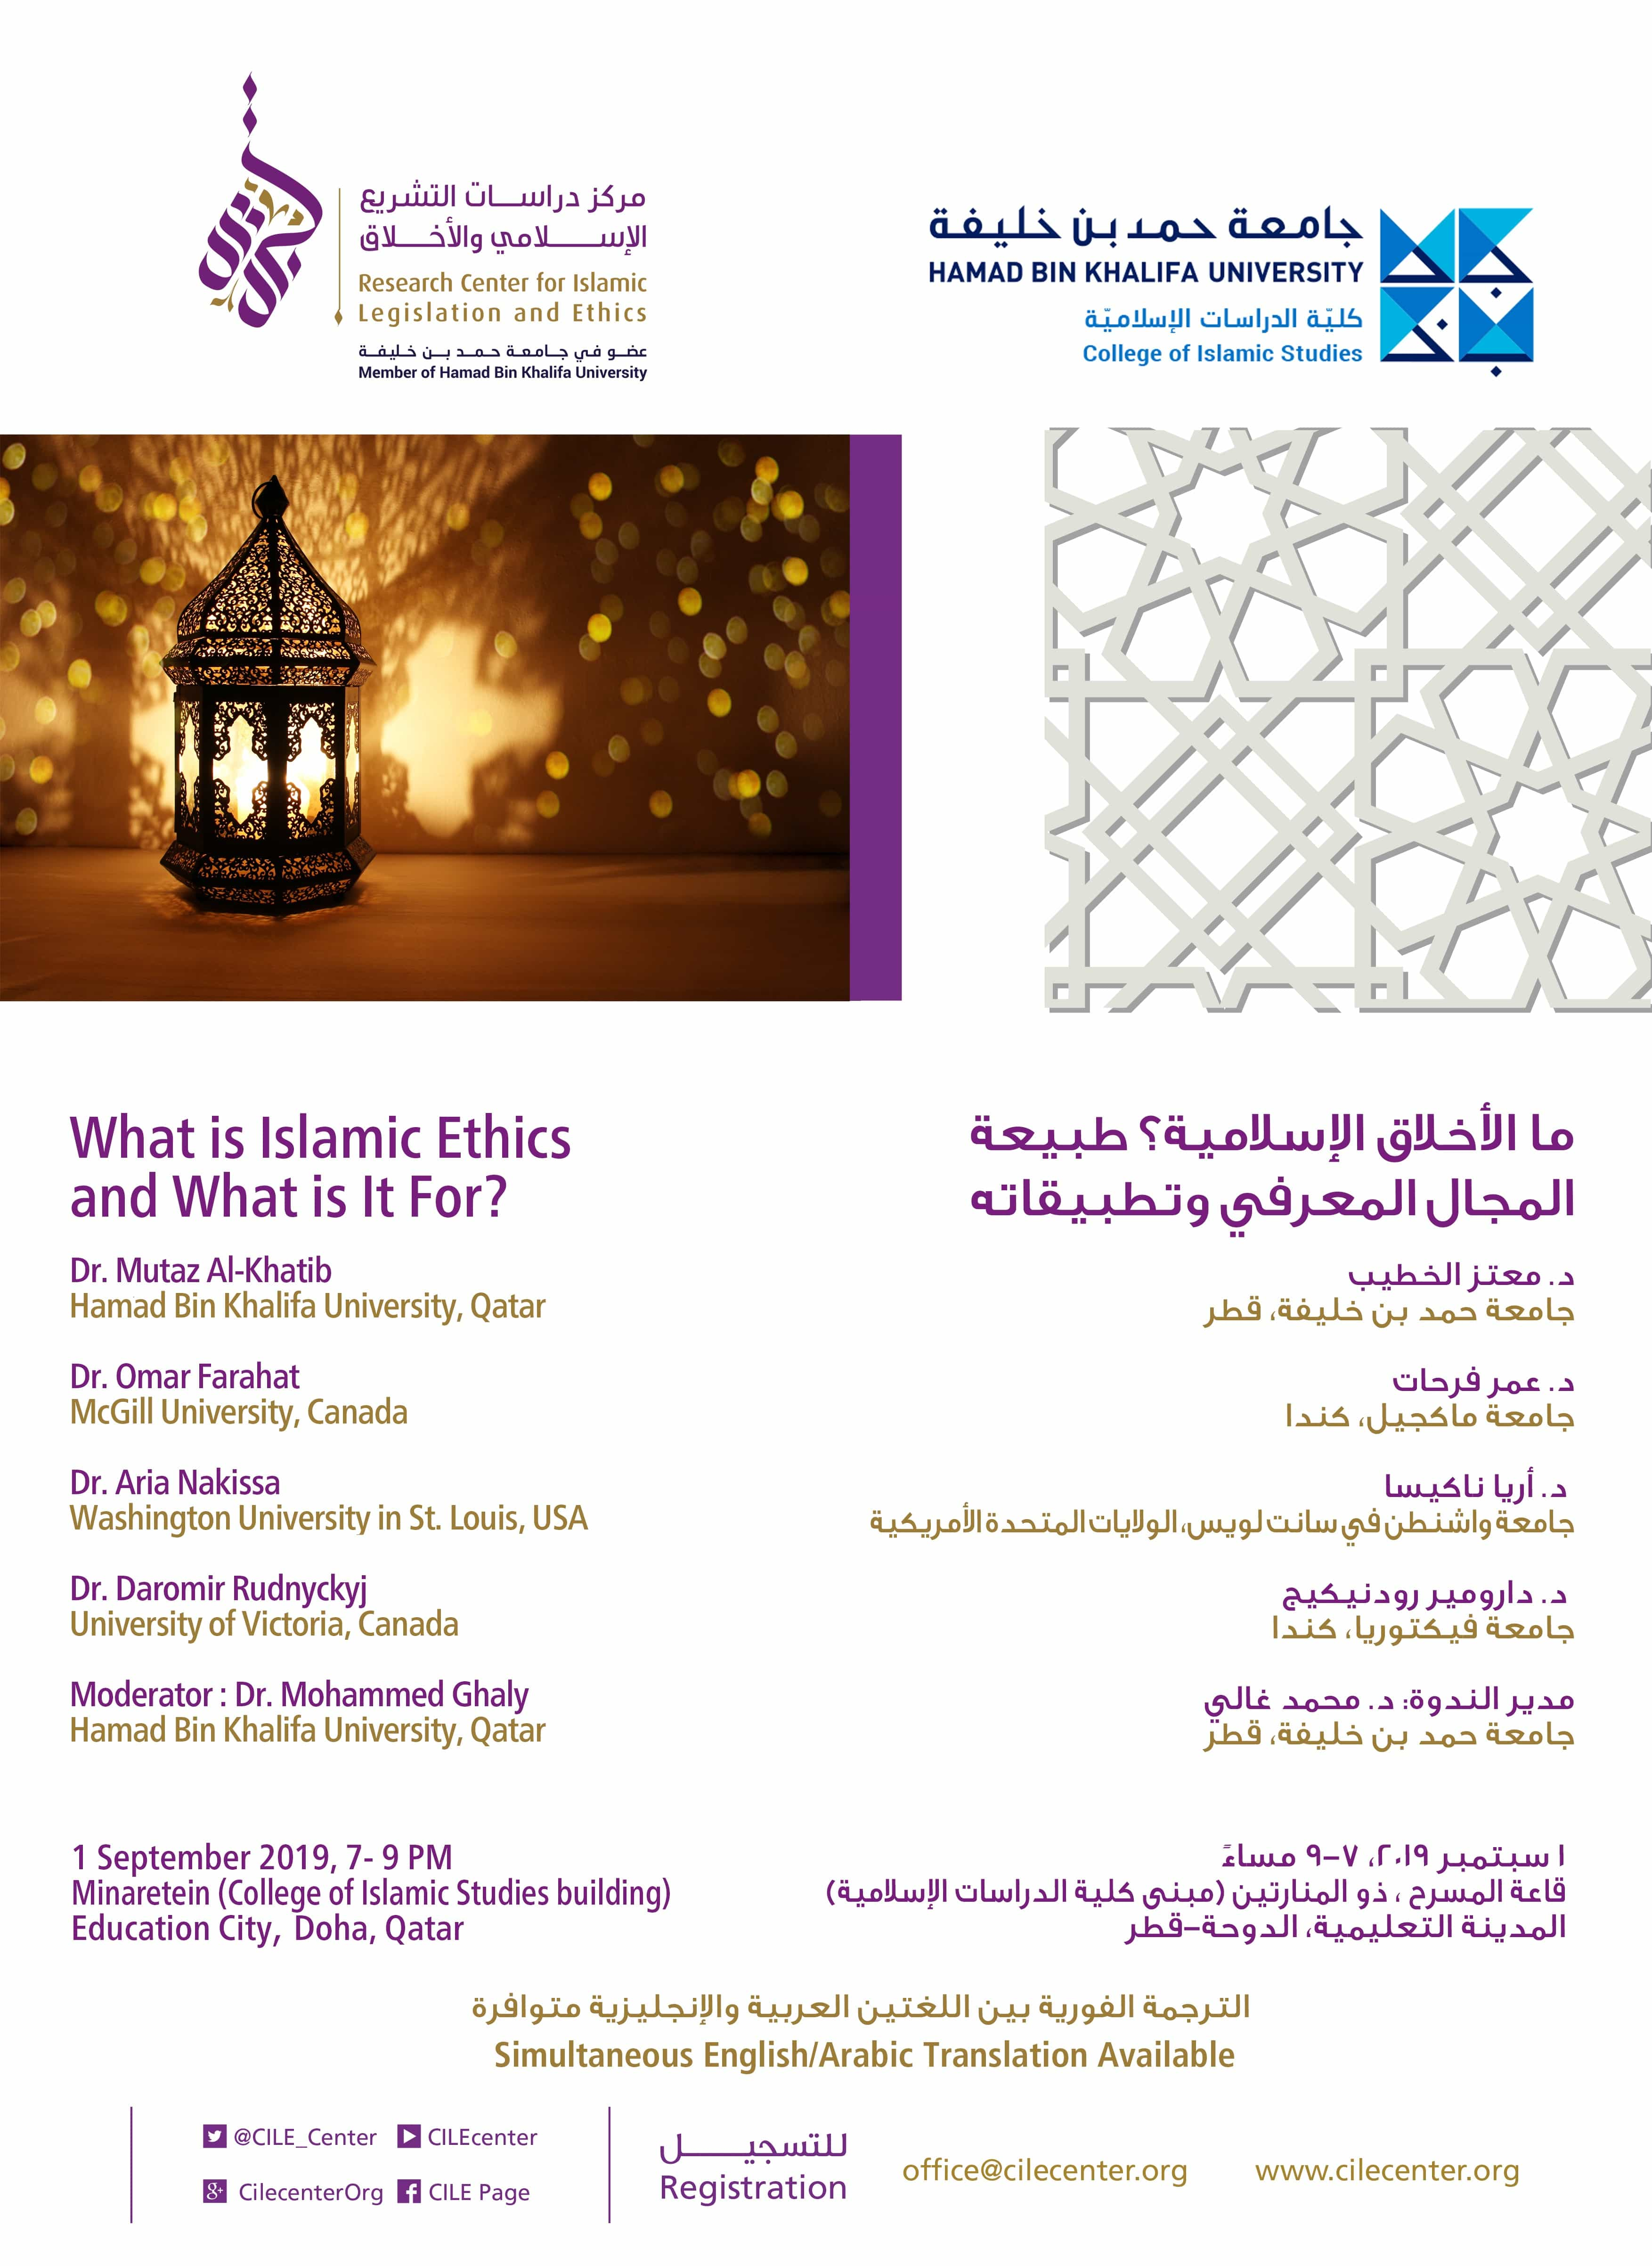 What is Islamic Ethics and what is it for?